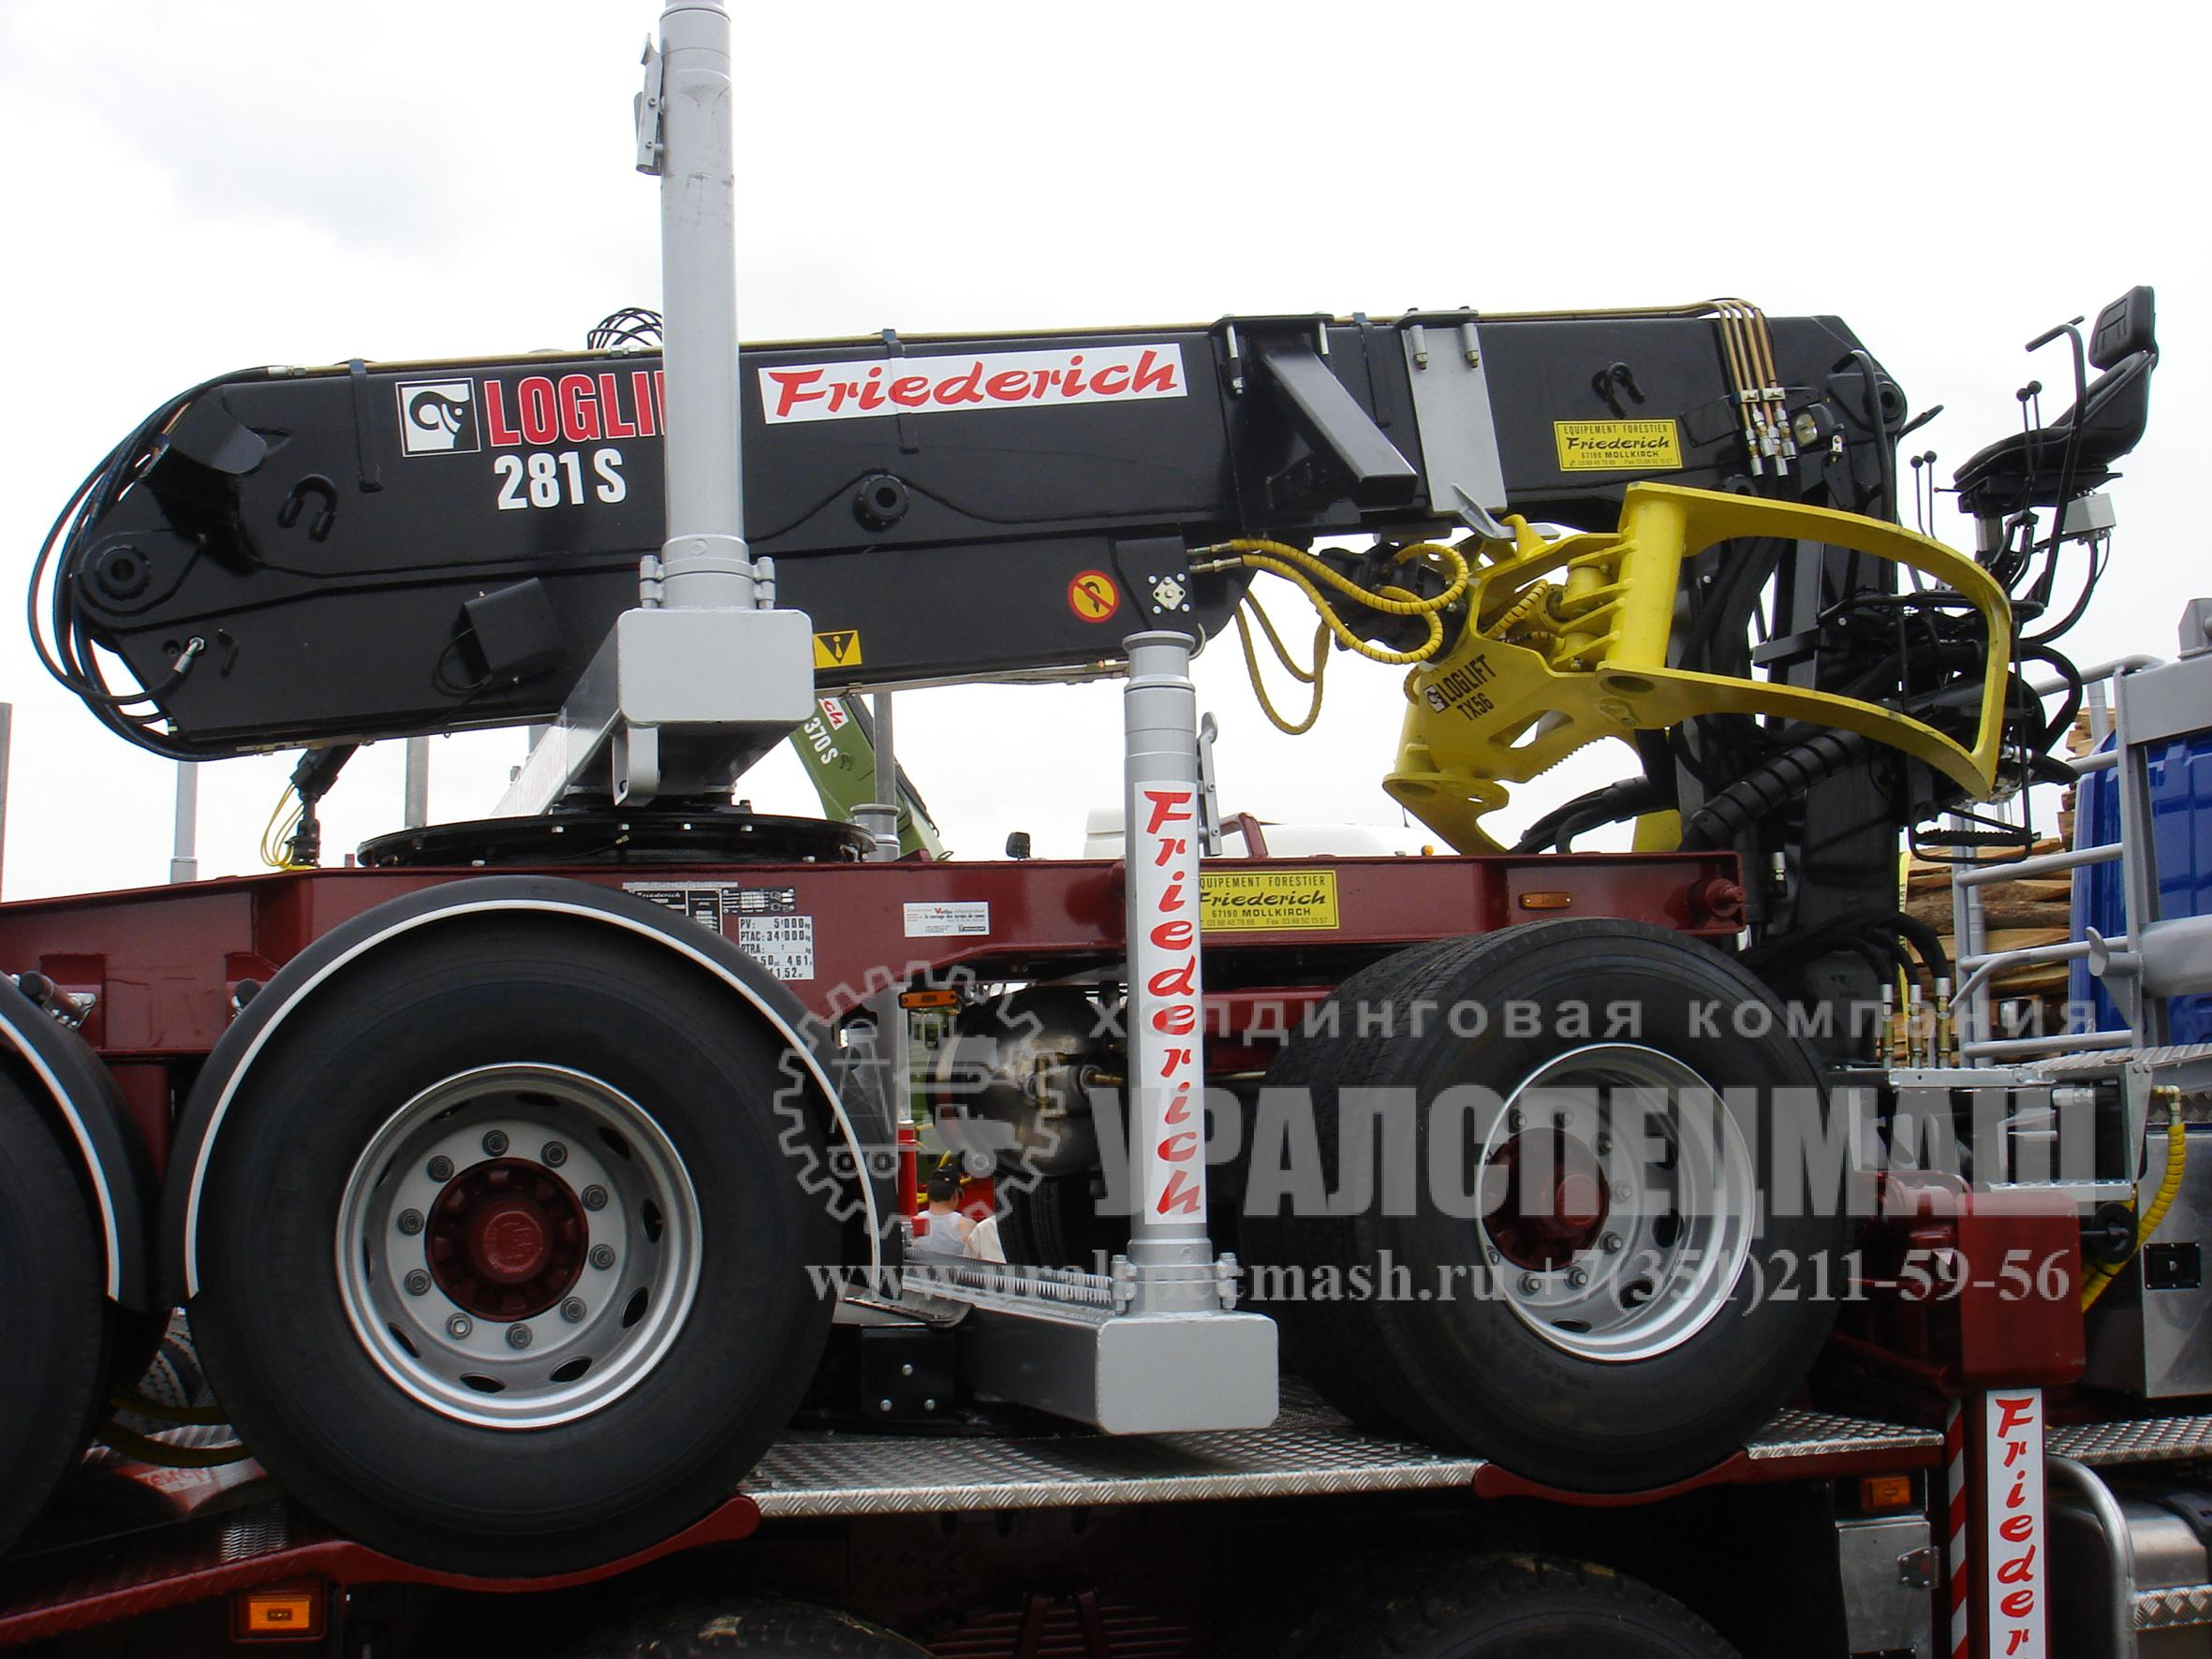 LOGLIFT F 281 S 97